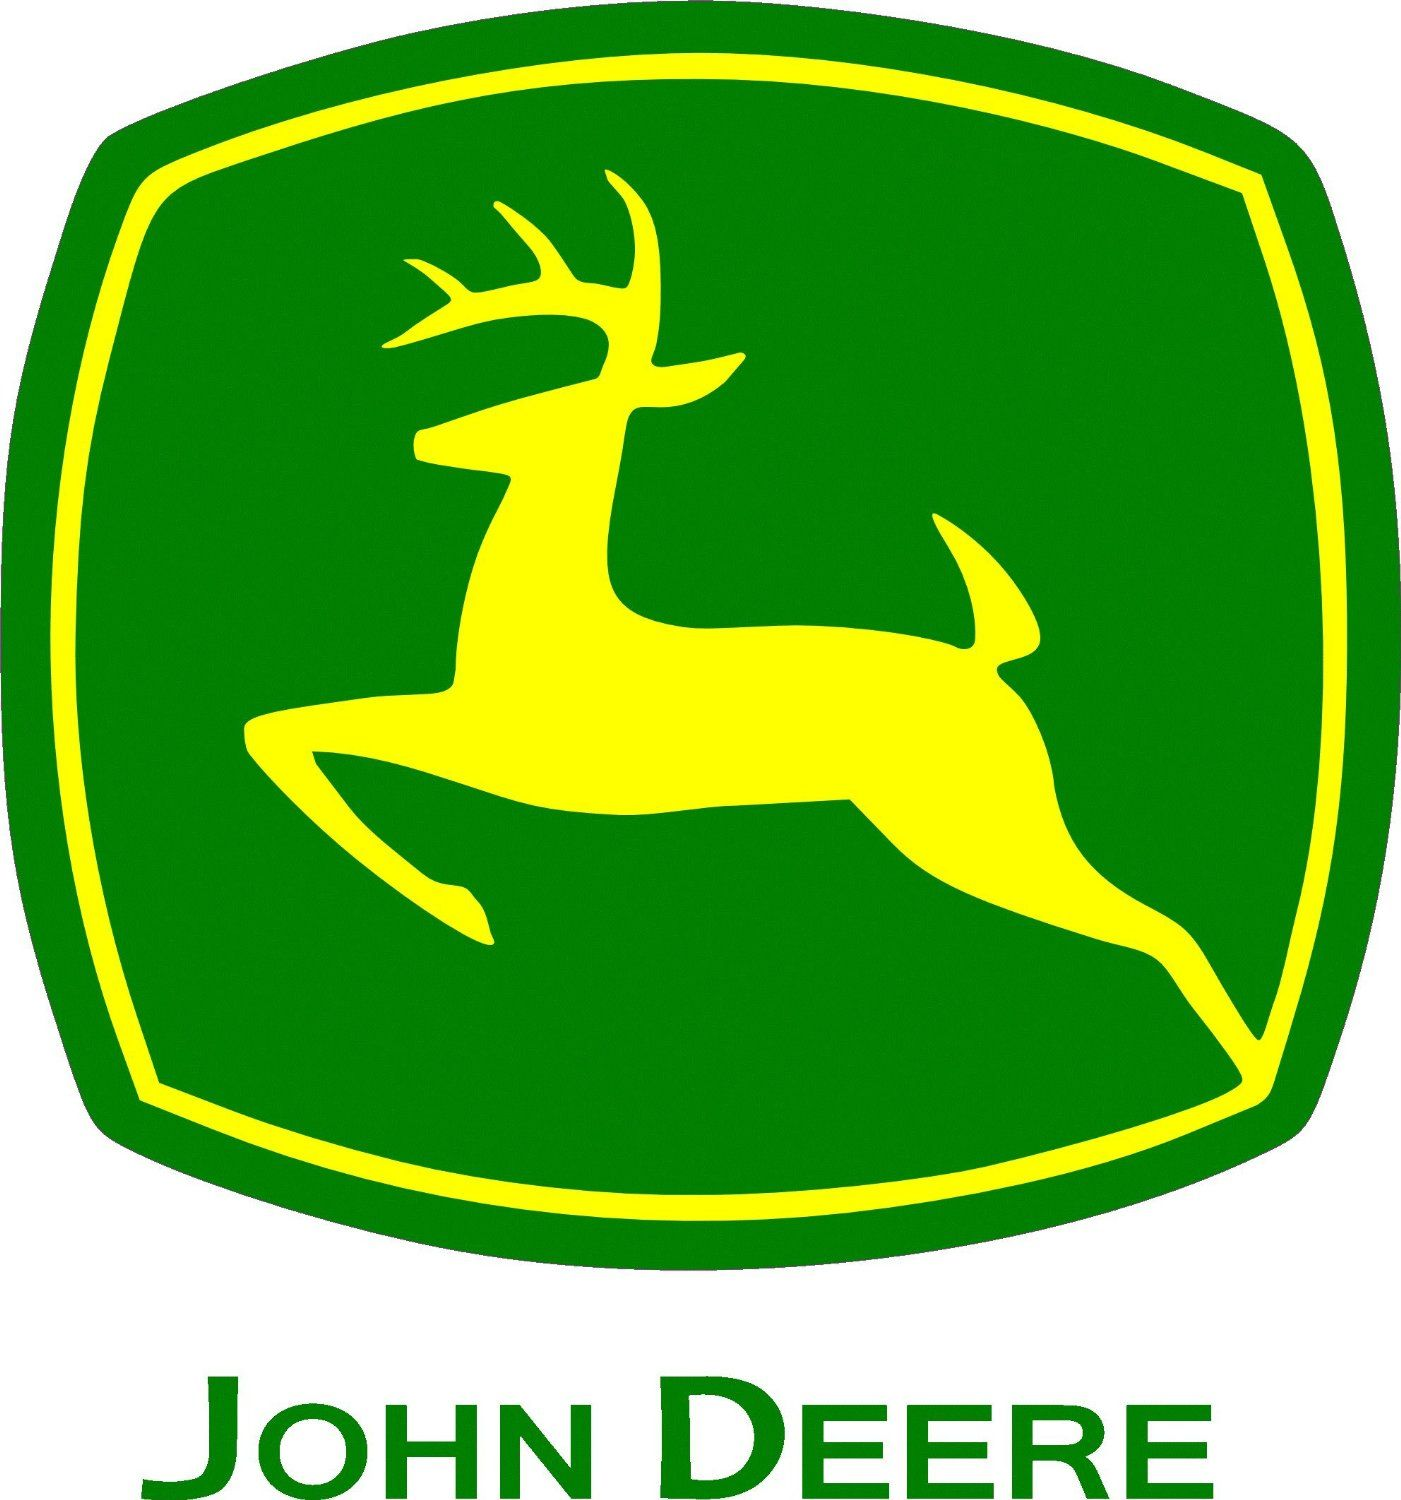 John Deere svg #345, Download drawings